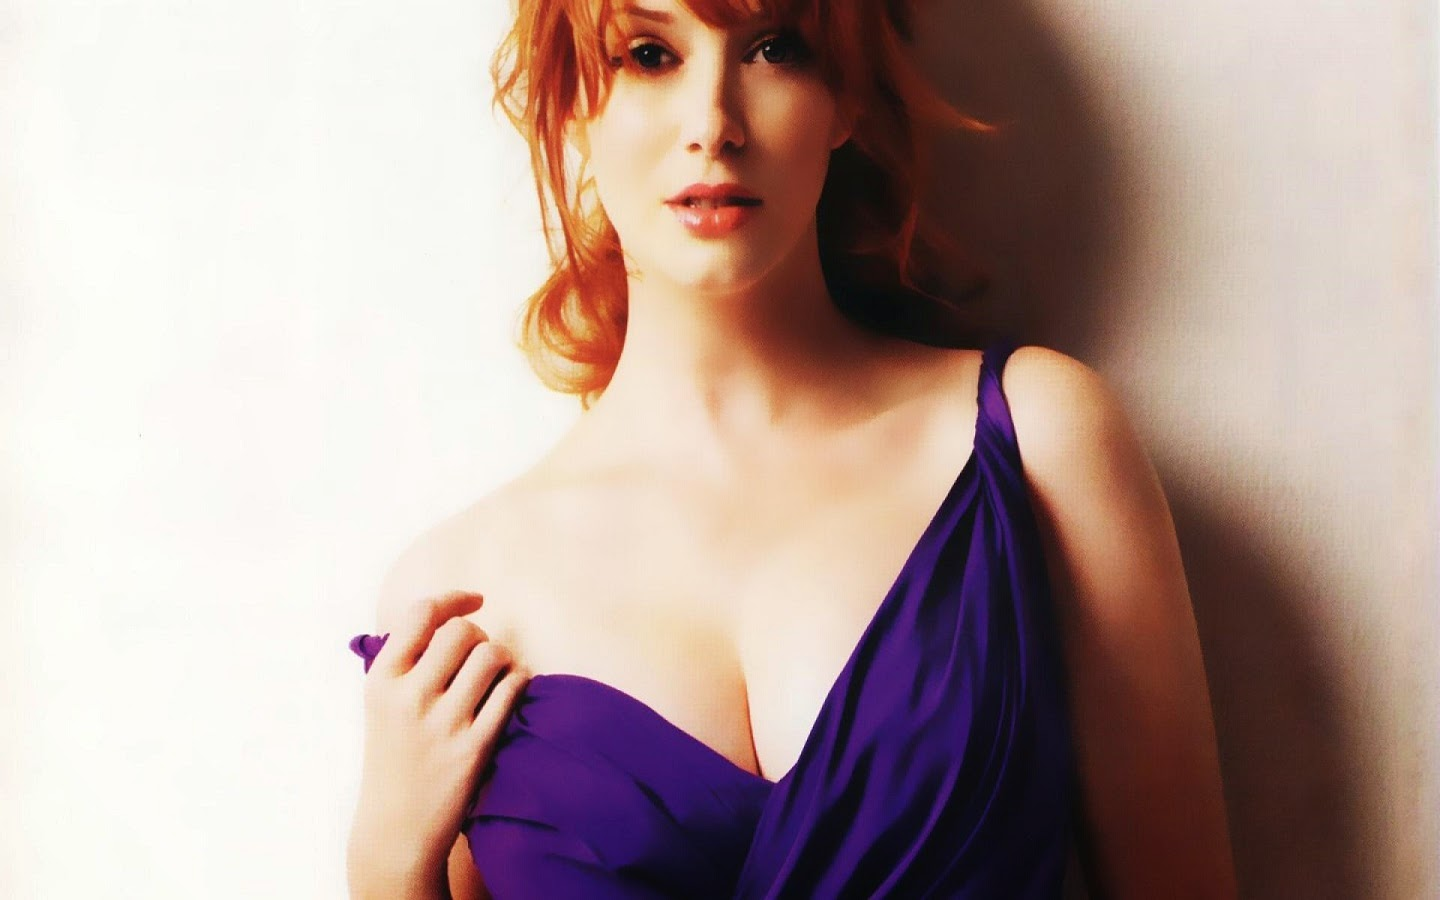 CHRISTINA HENDRICKS_WALLSTOWN_IN_HOLLYWOOD ACTRESS_HOLLYWOOD CELEBRITIES